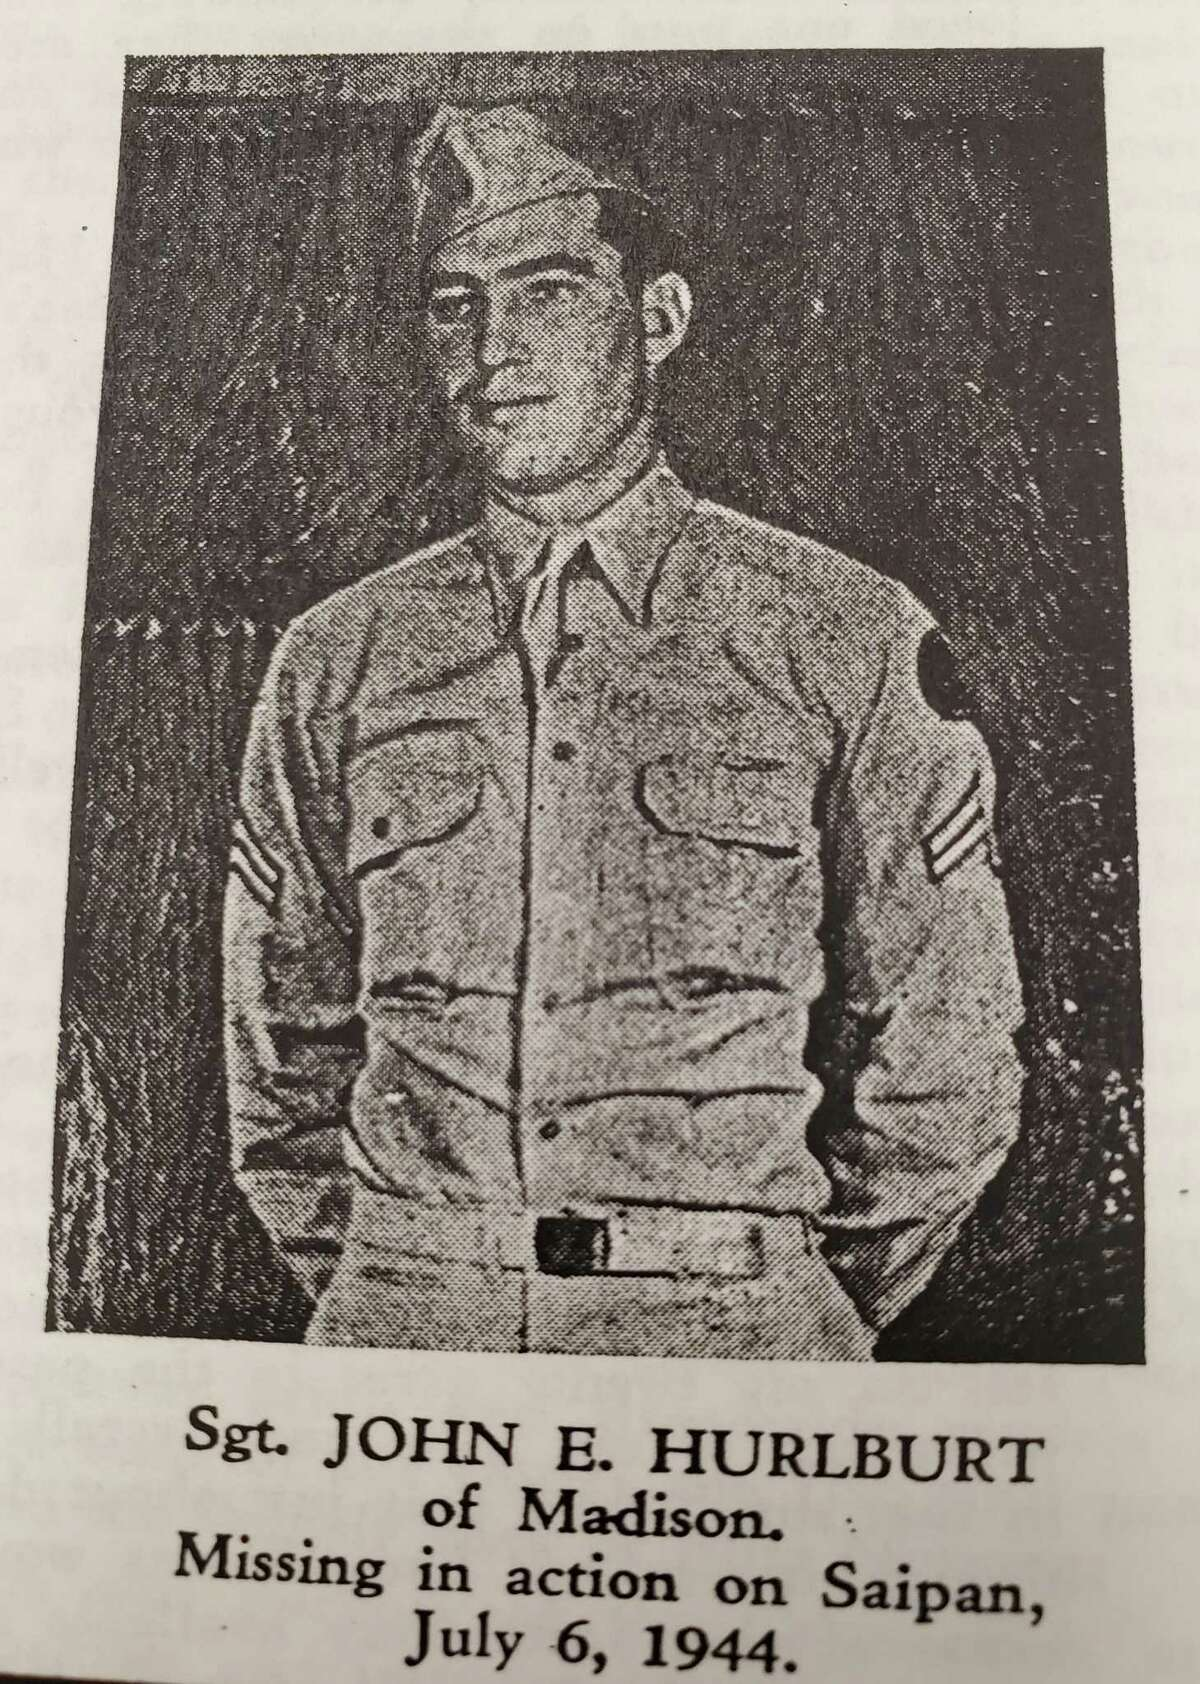 The remains of Army Sgt. John E. Hurlburt, killed fighting in World War II in 1944, were recently identified.